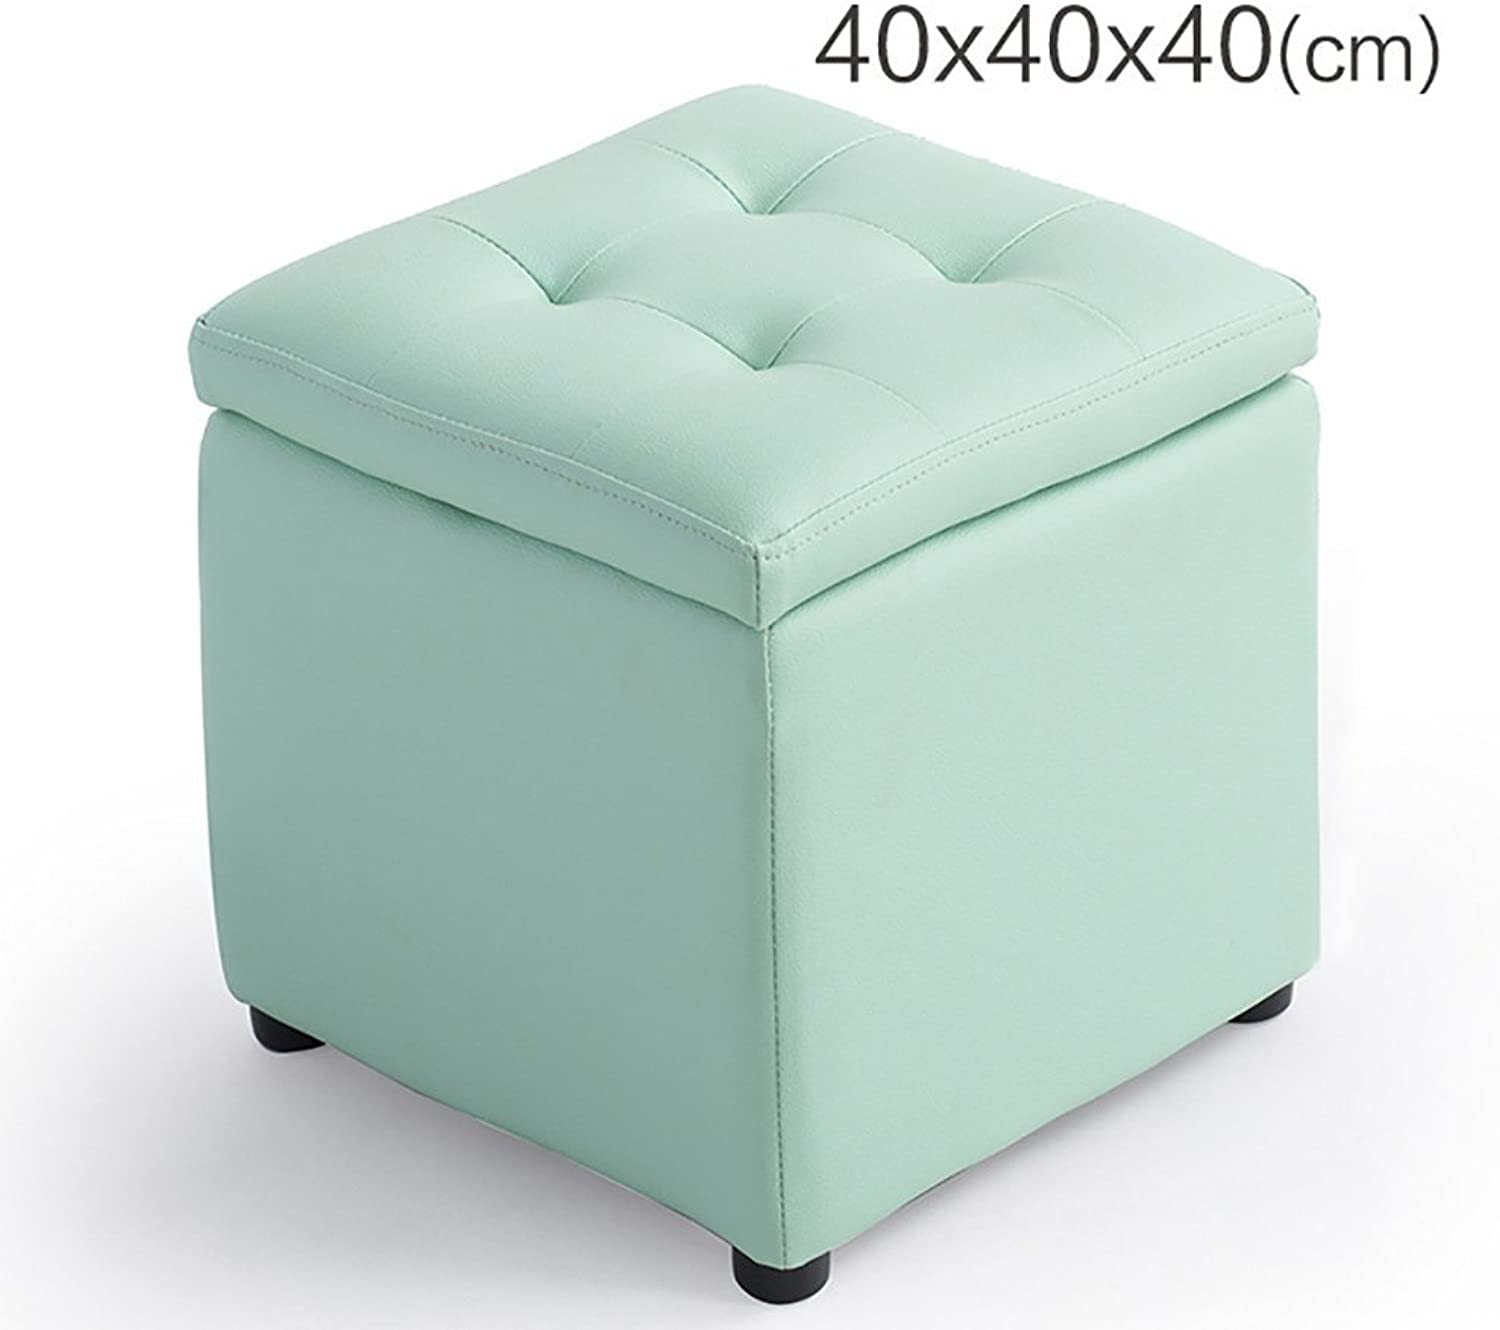 AIDELAI Bar Stool Chair- Storage Stool Stool Stool shoes Stool Hall Sofa Stool Storage Stool Stool Footstool shoes Stool Small Stool Saddle Seat (color   F, Size   40  40  40cm)